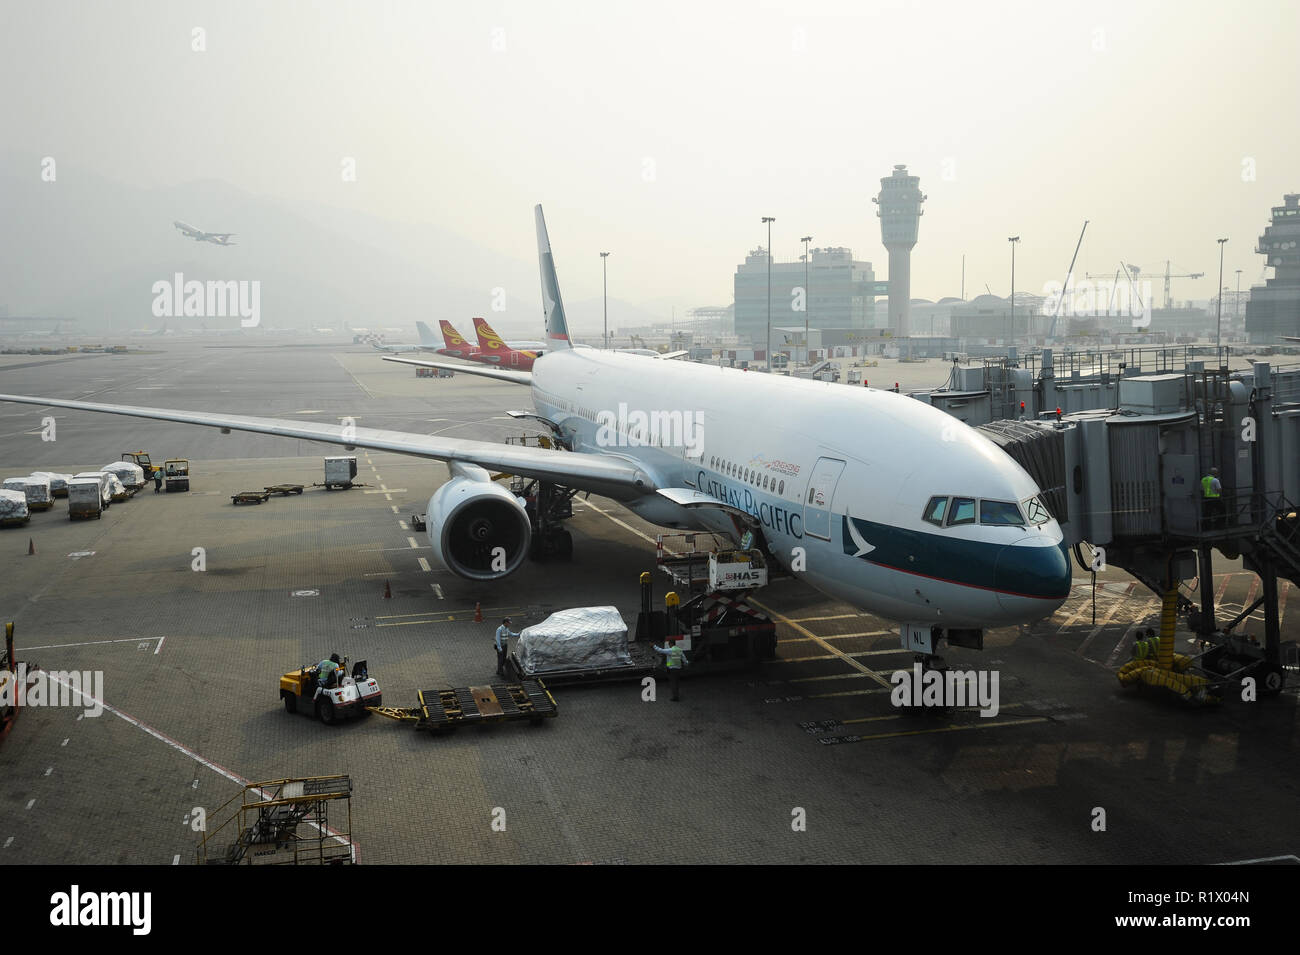 14.10.2014, Hong Kong, China, Asia - A Cathay Pacific passenger plane is docked at a gate at Hong Kong's International Airport Chek Lap Kok. Stock Photo